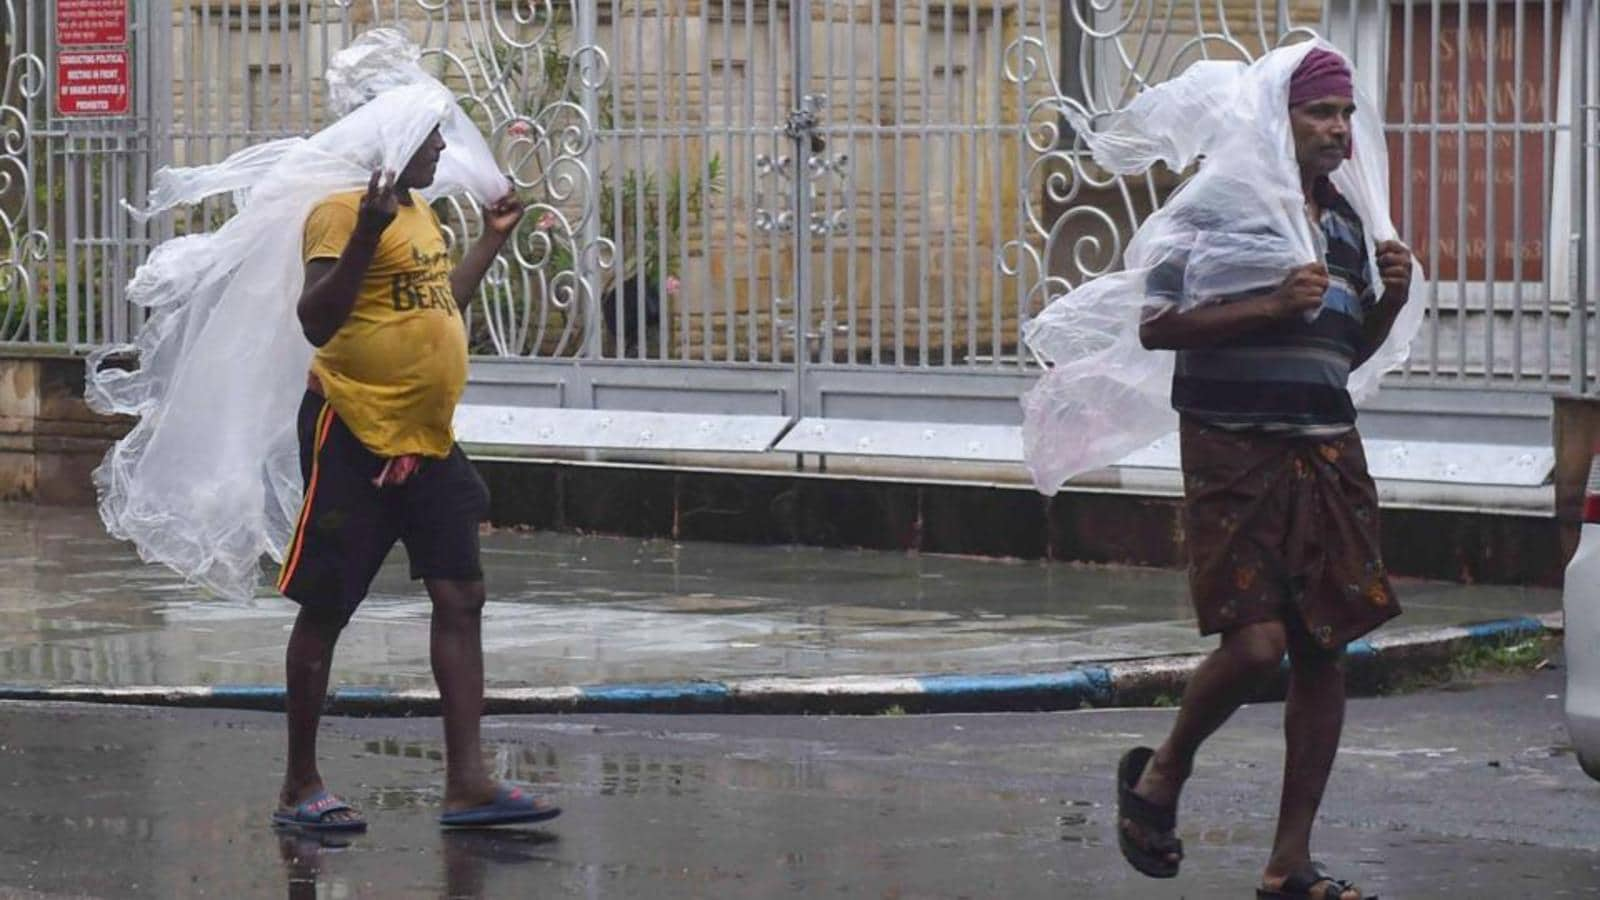 Heavy rain in south Bengal likely to continue over next 48 hrs